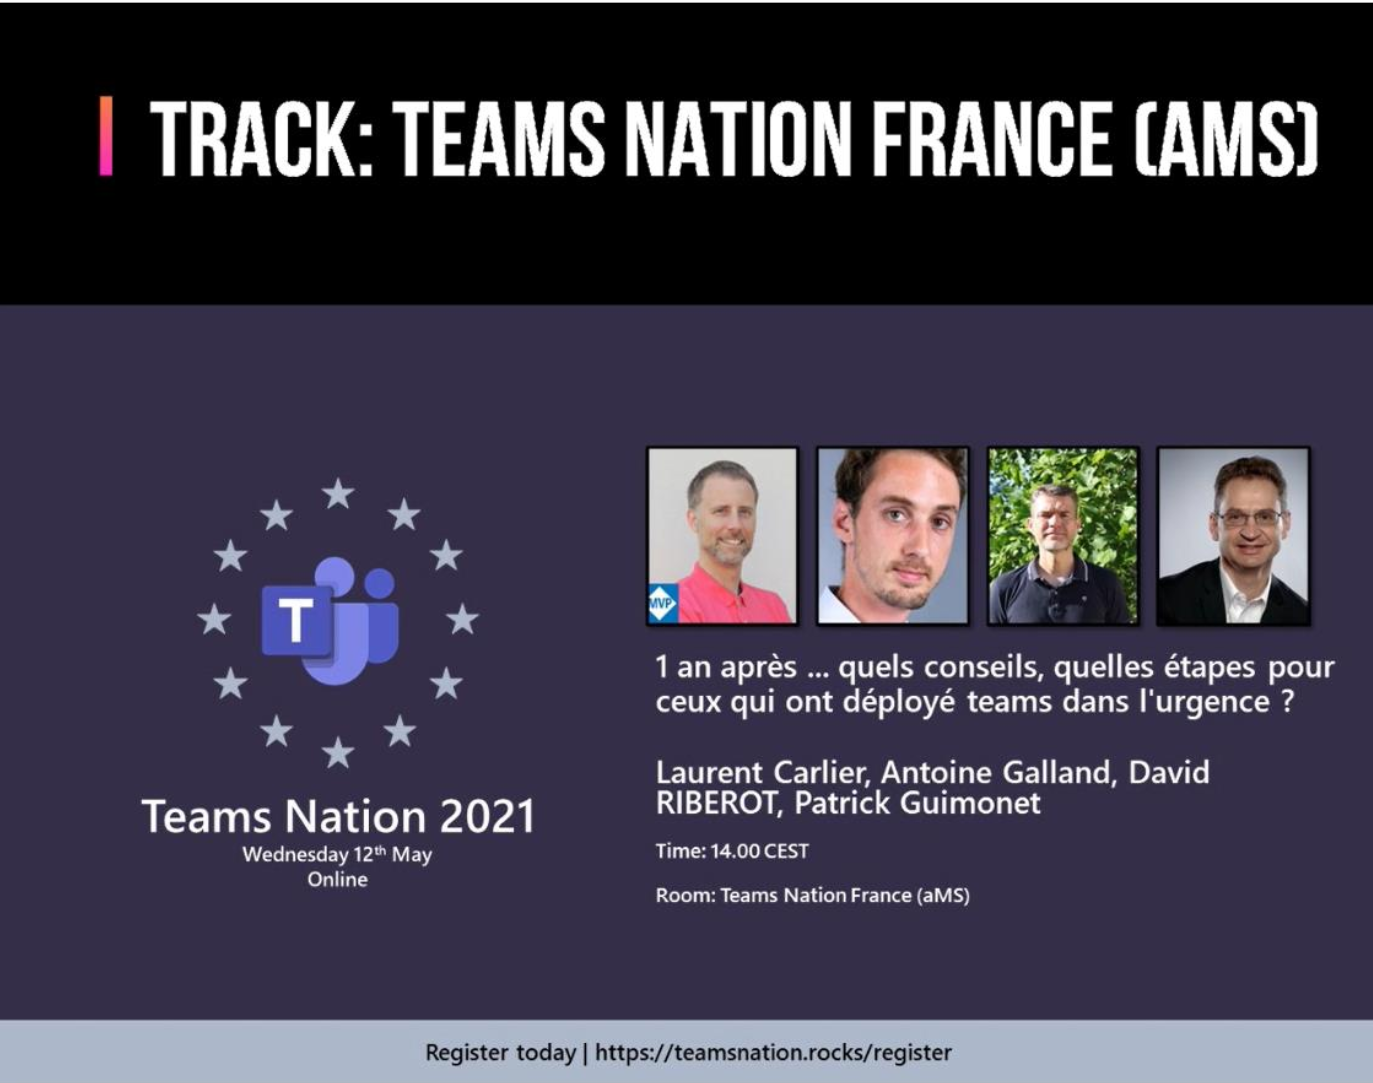 Teams Nation event